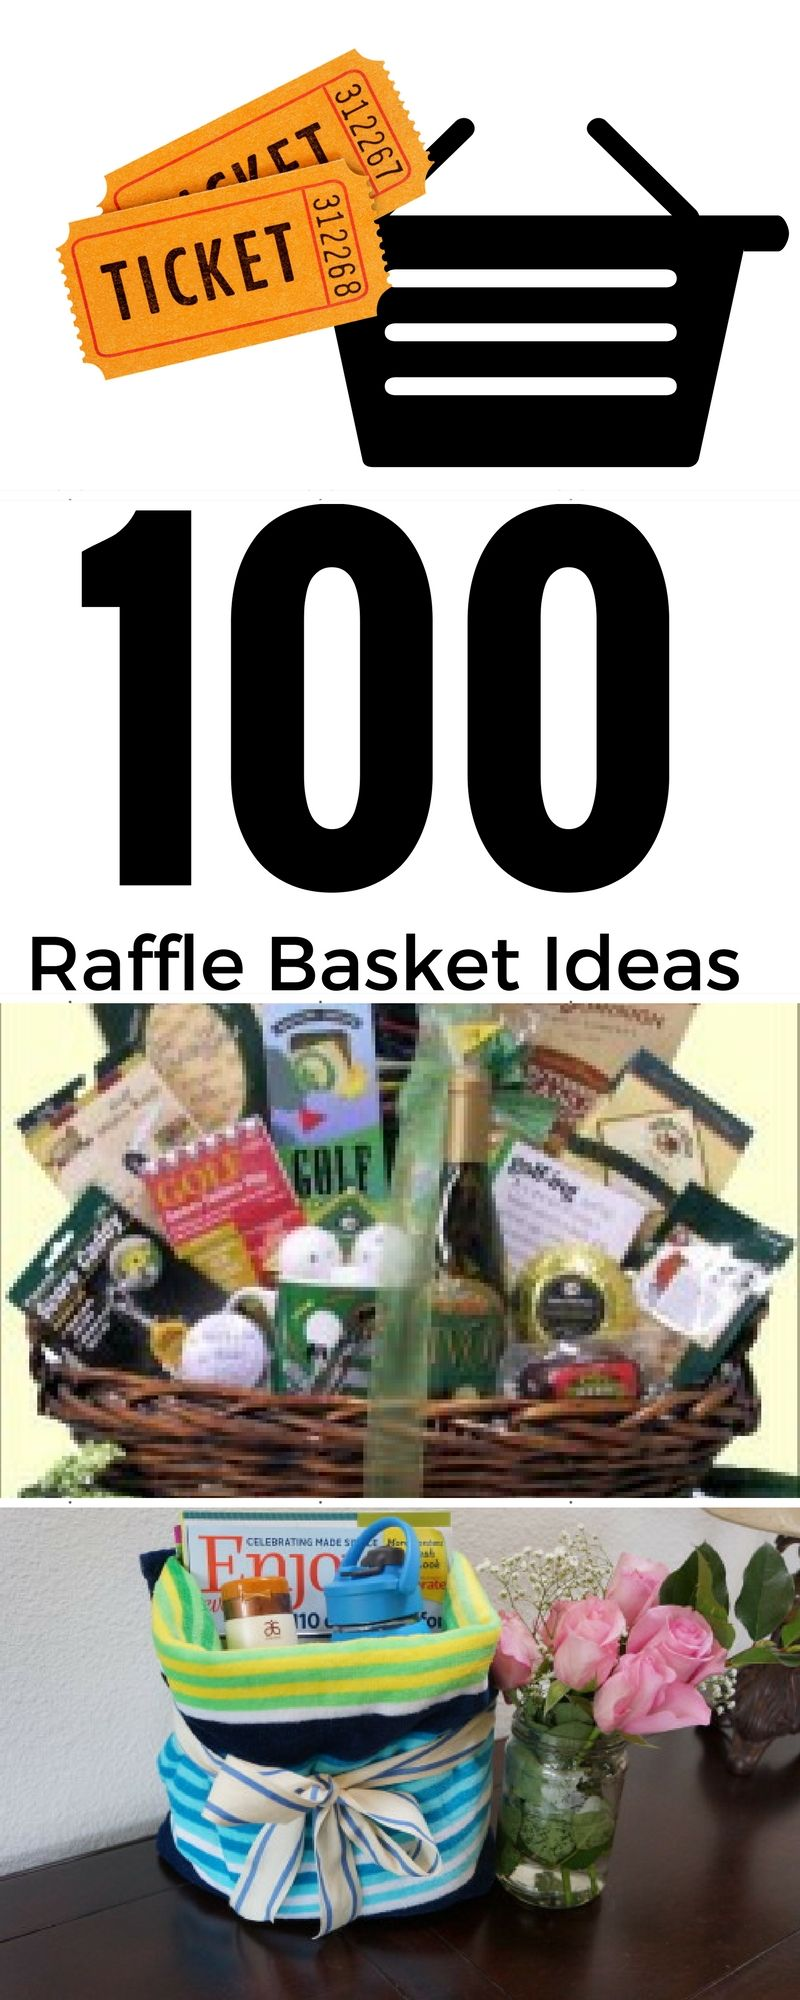 100 fall raffle basket ideas | housewarming | pinterest | raffle